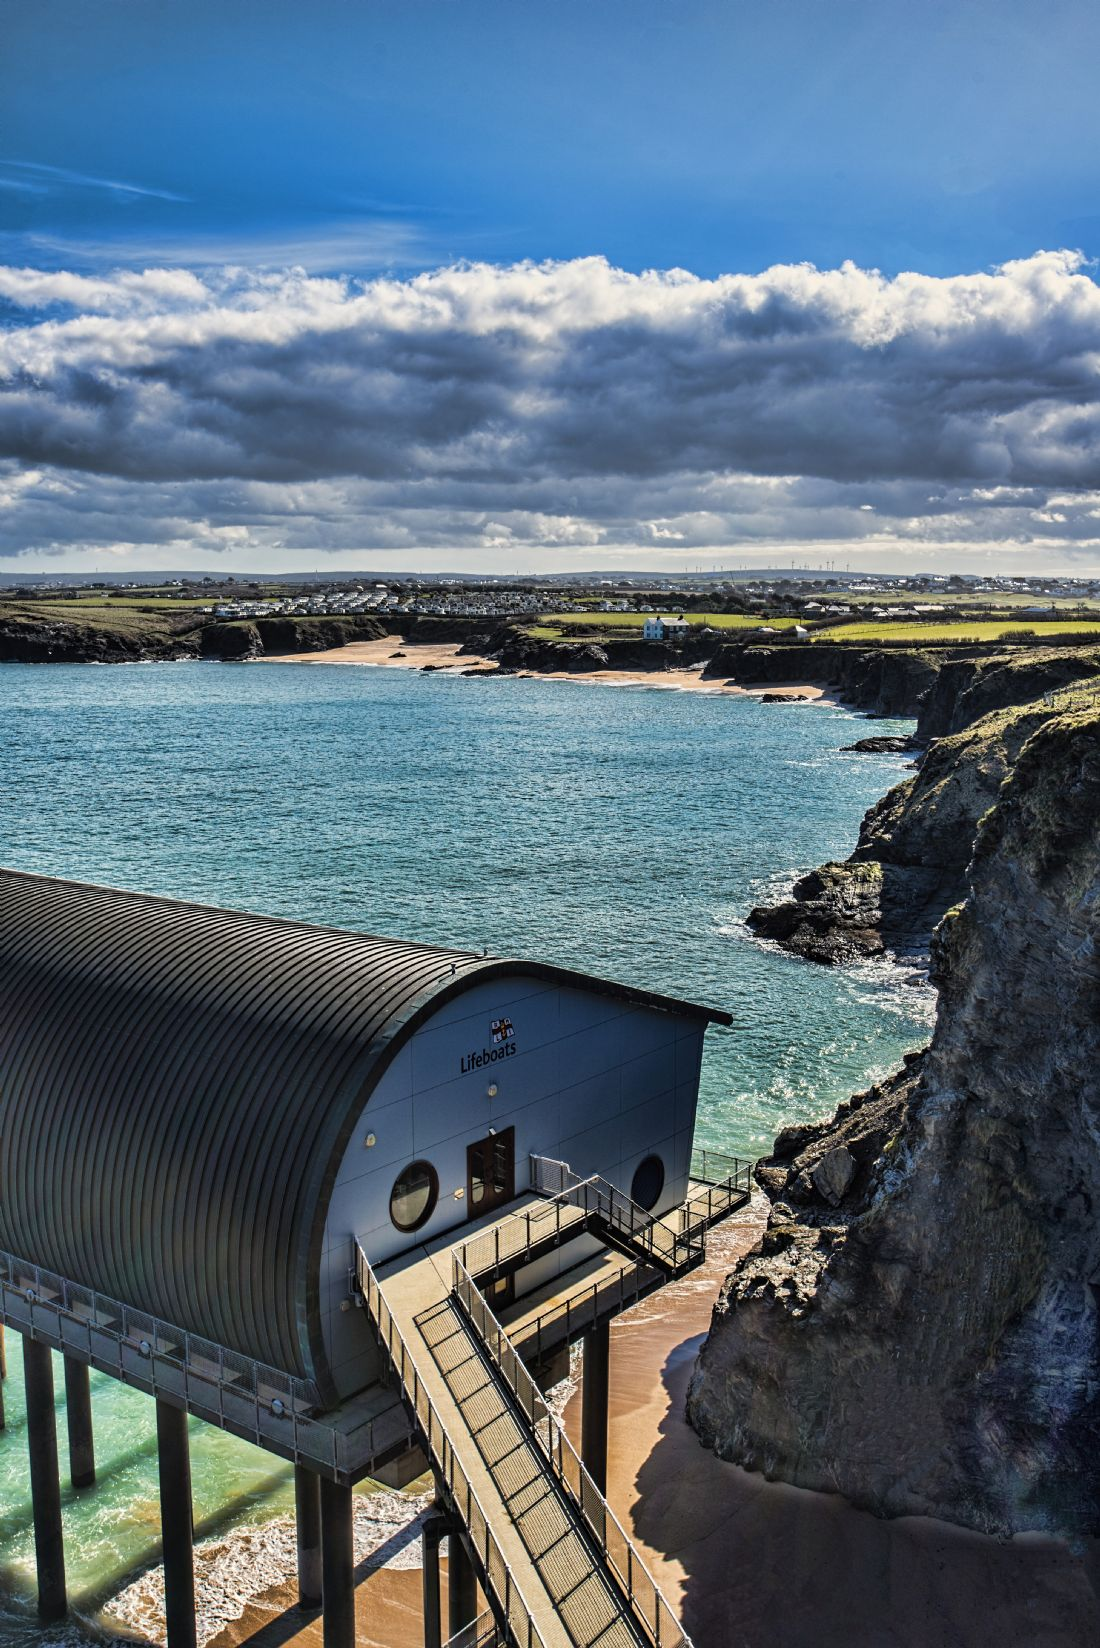 Chris Thaxter | Padstow Lifeboat Station 2